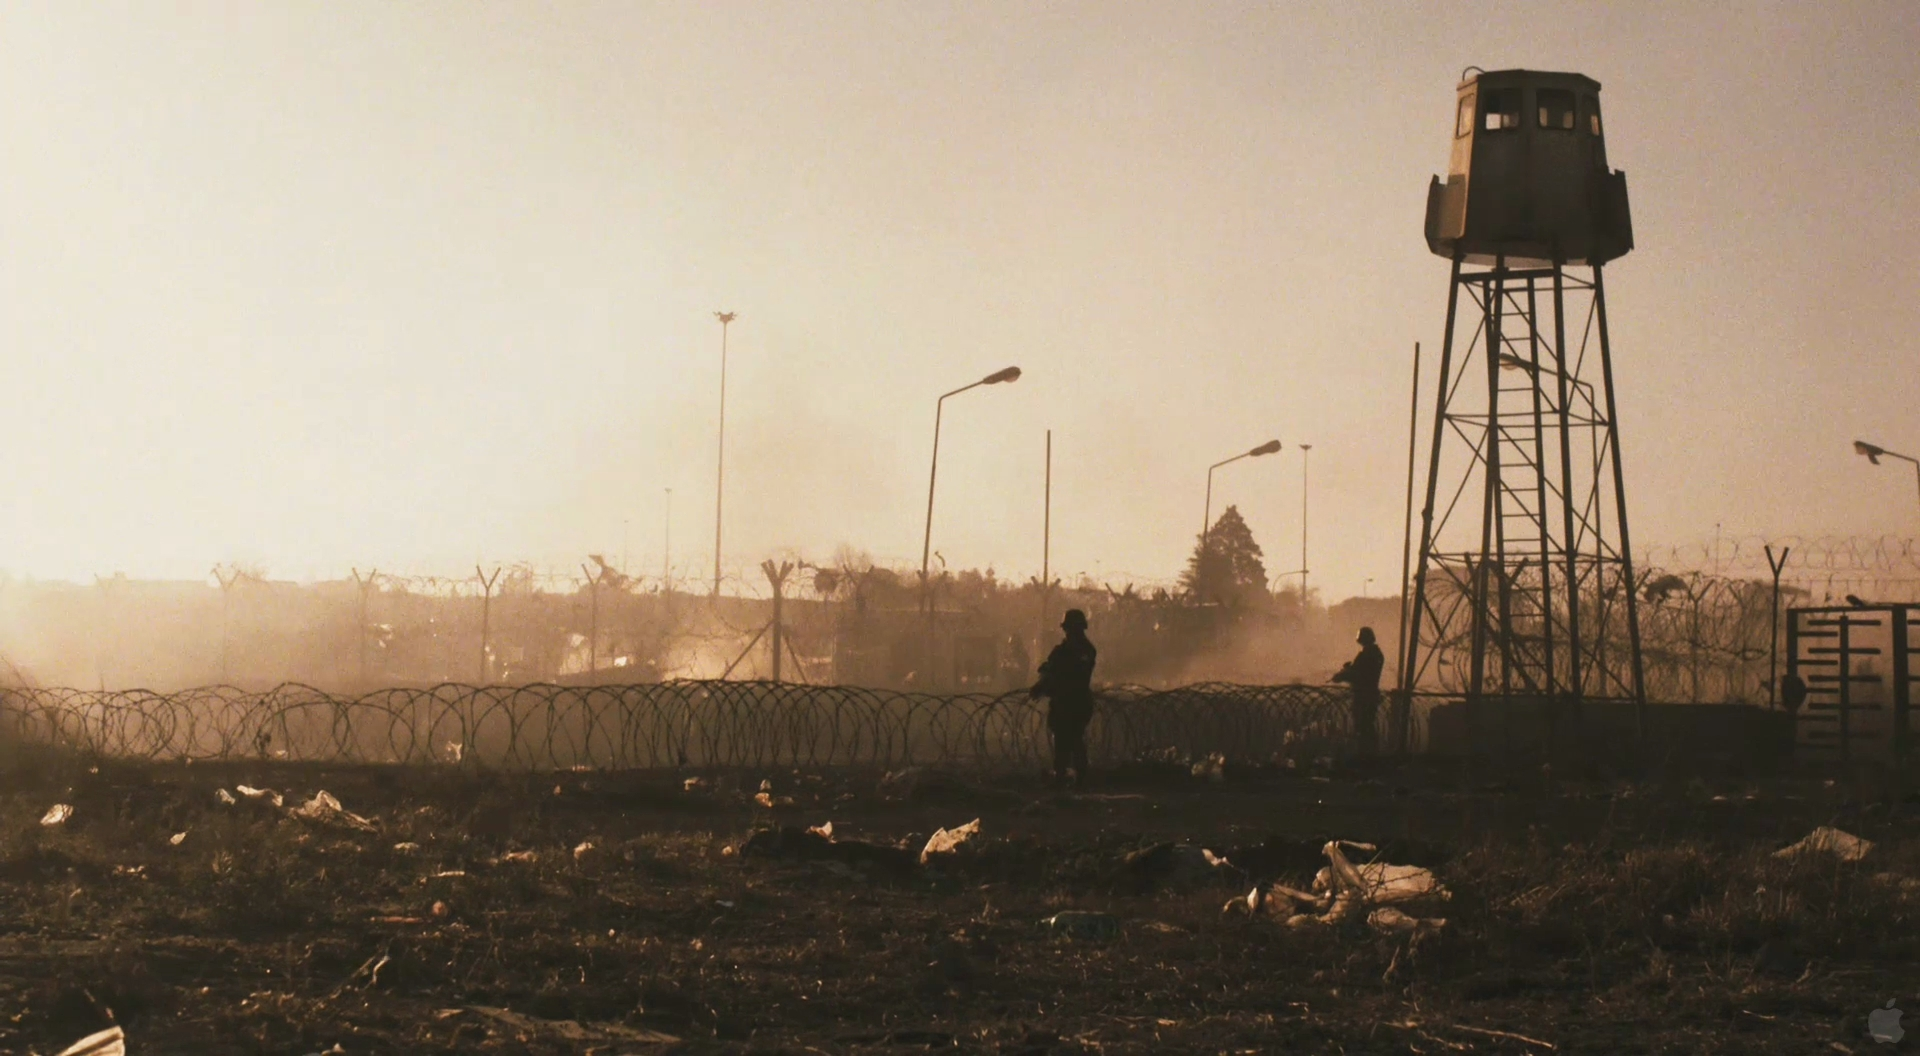 district 9 computer wallpapers - photo #8